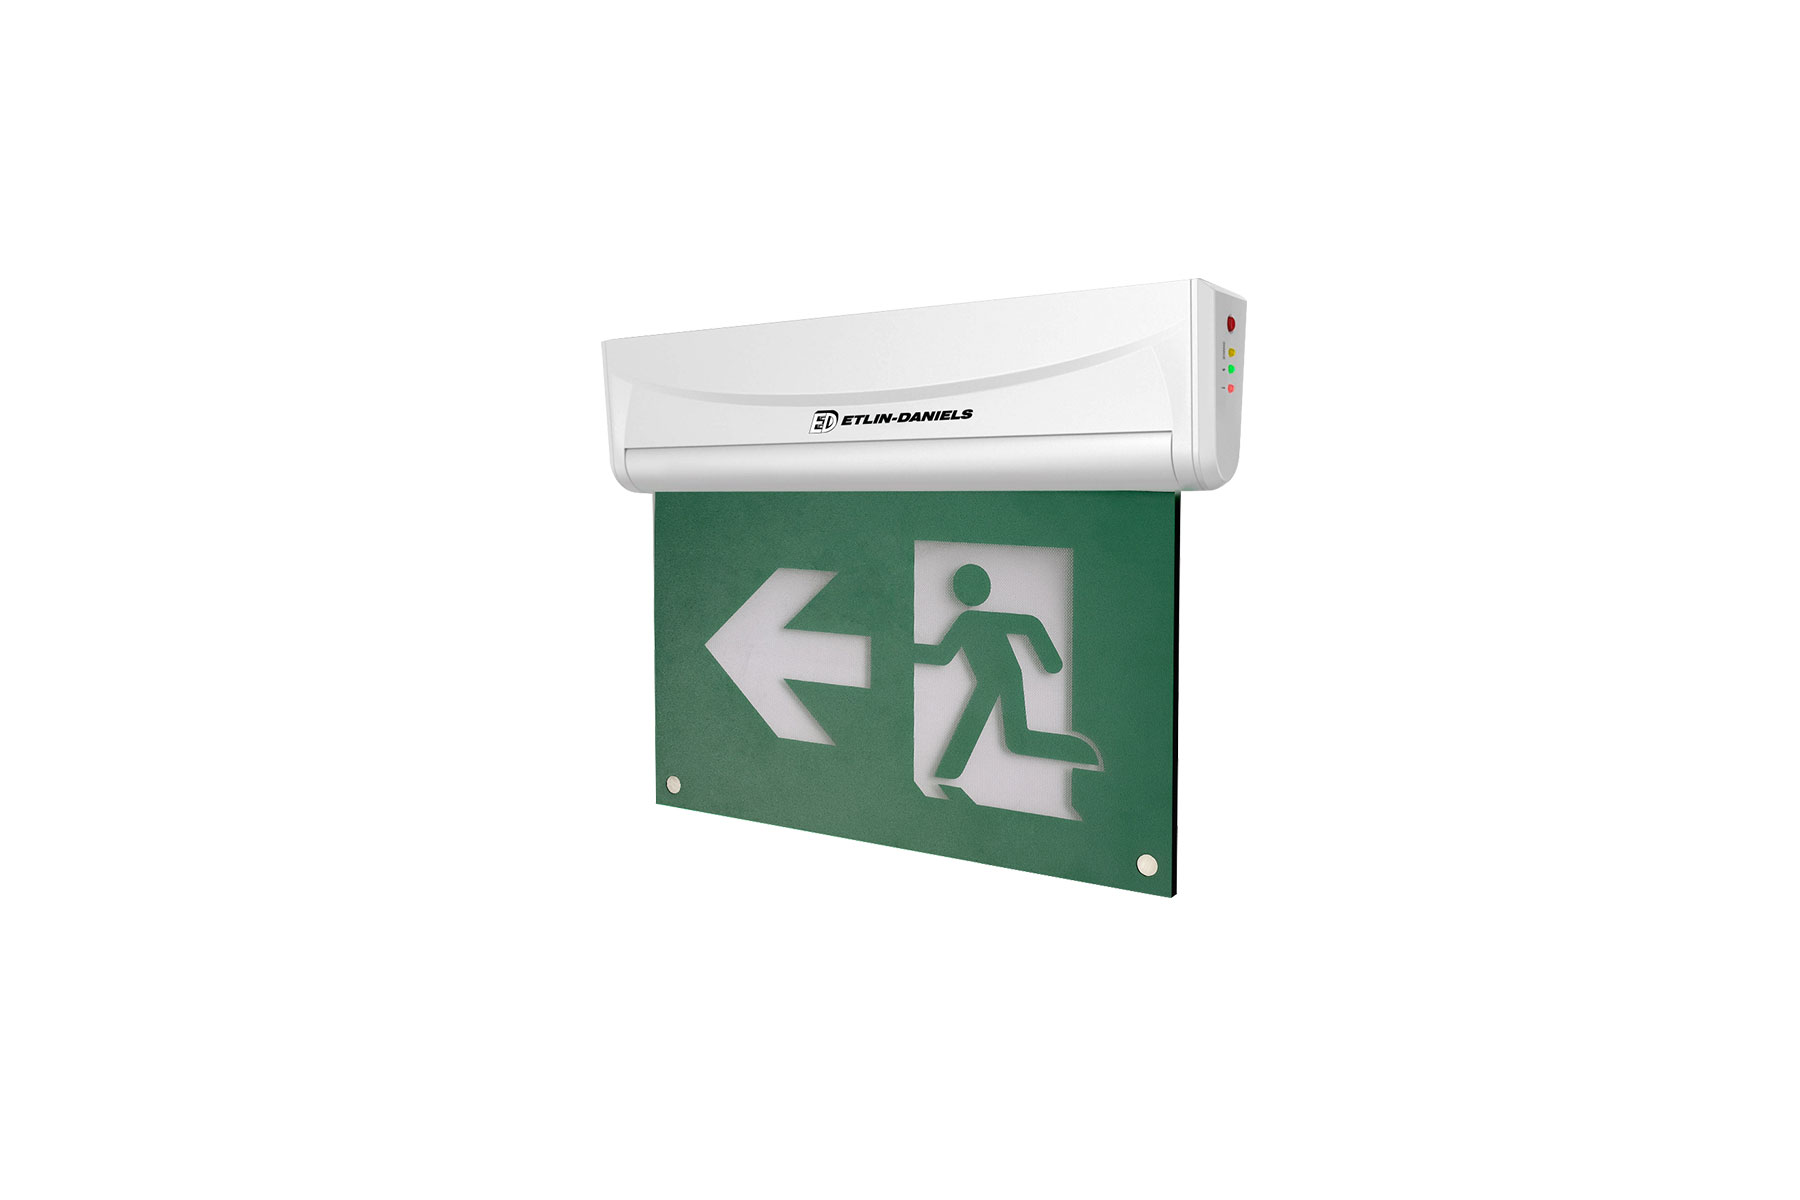 EE202WH-A13BB-GU - LED RUNNING MAN EXIT SIGN EDGE LIT